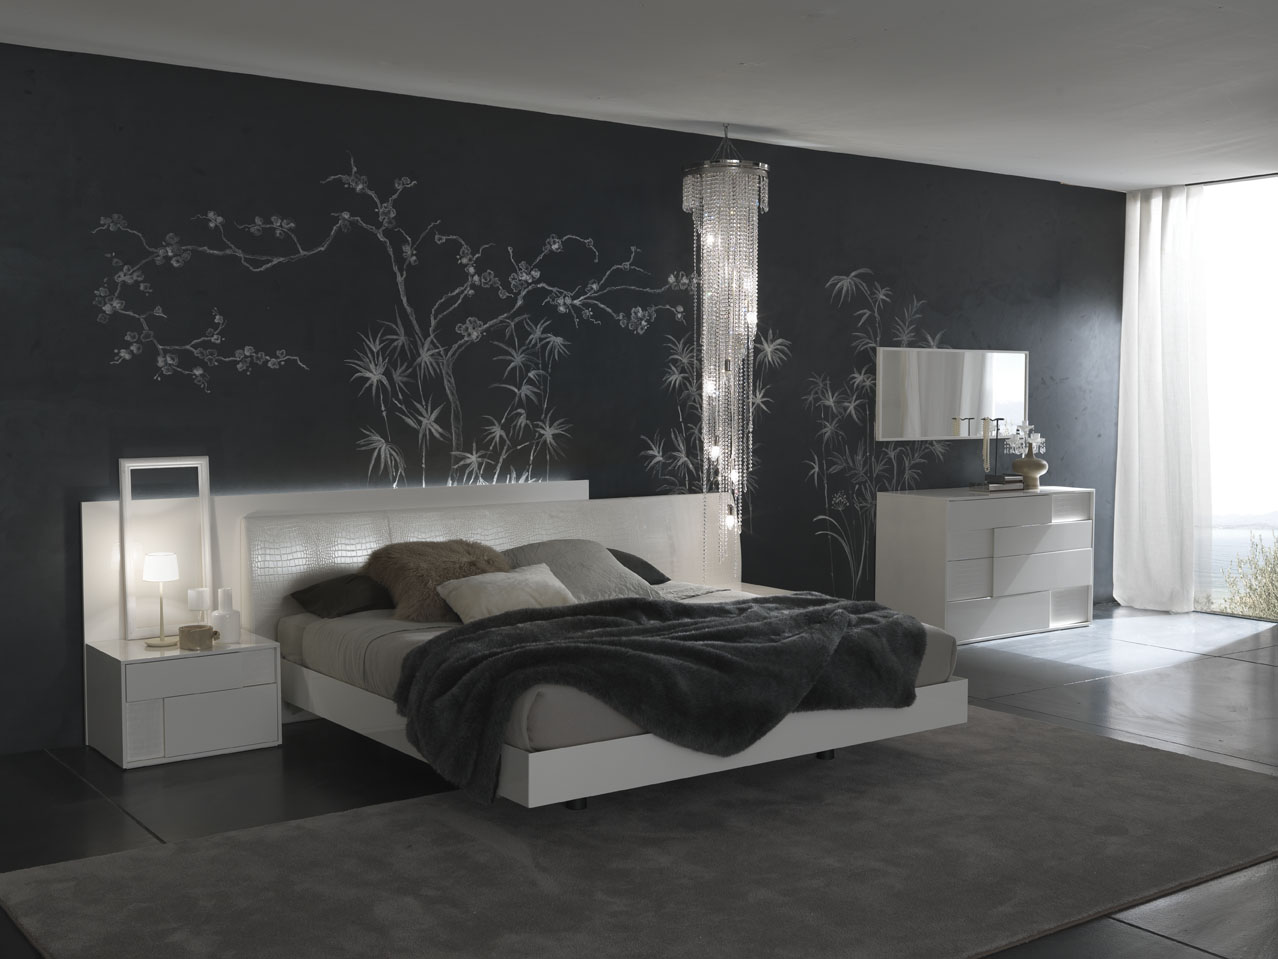 bedroom wall decorating ideas bedroom decorating ideas from evinco 4048